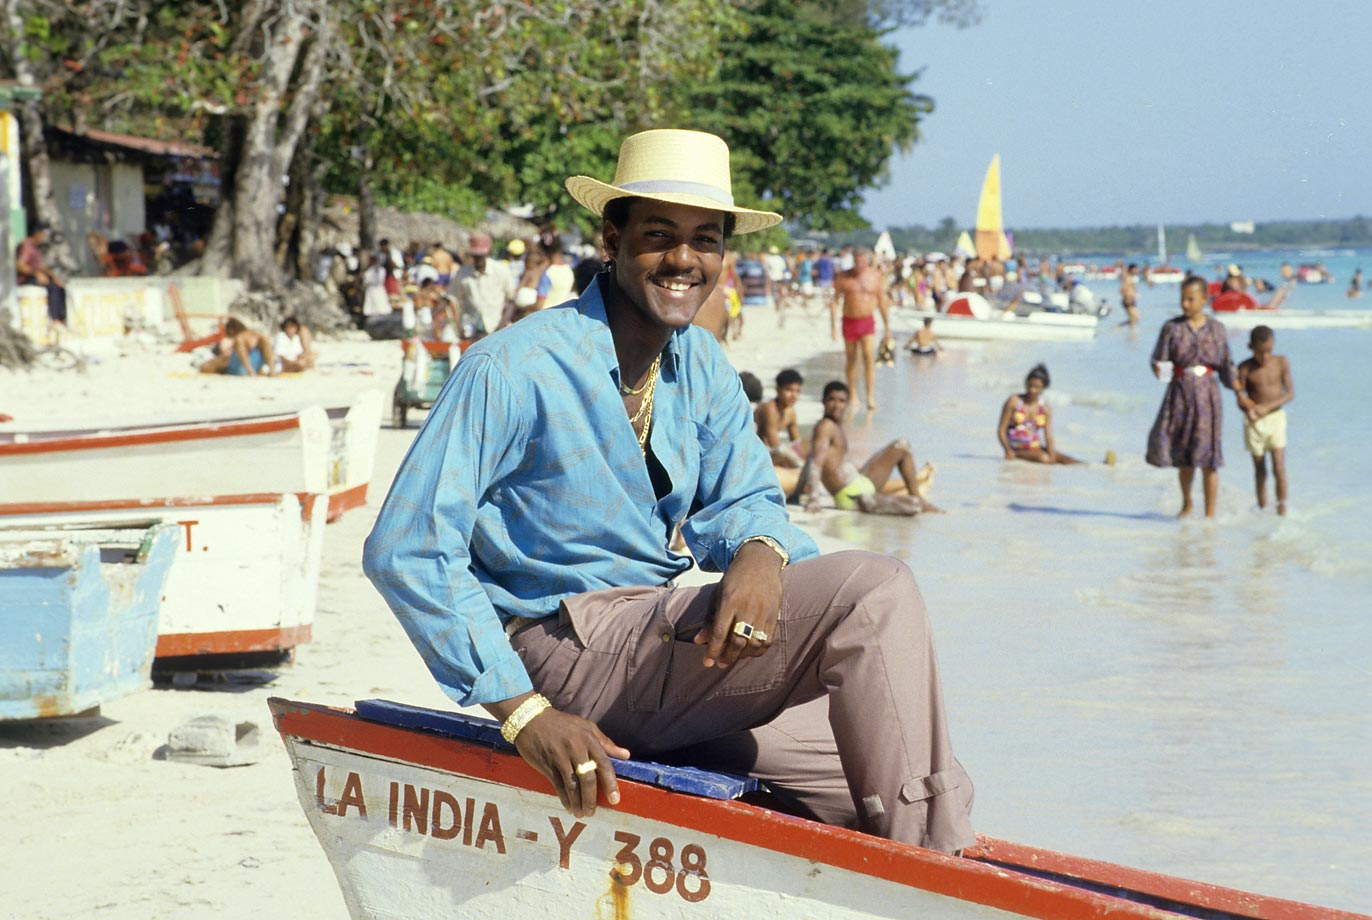 A free-swinging shortstop for the Atlanta Braves, Thomas relaxes on a boat during a photo shoot in his hometown of Boca Chica, Dominican Republic. Thomas played for Atlanta from 1985 to 1990, hitting .234 with 42 home runs in his career.